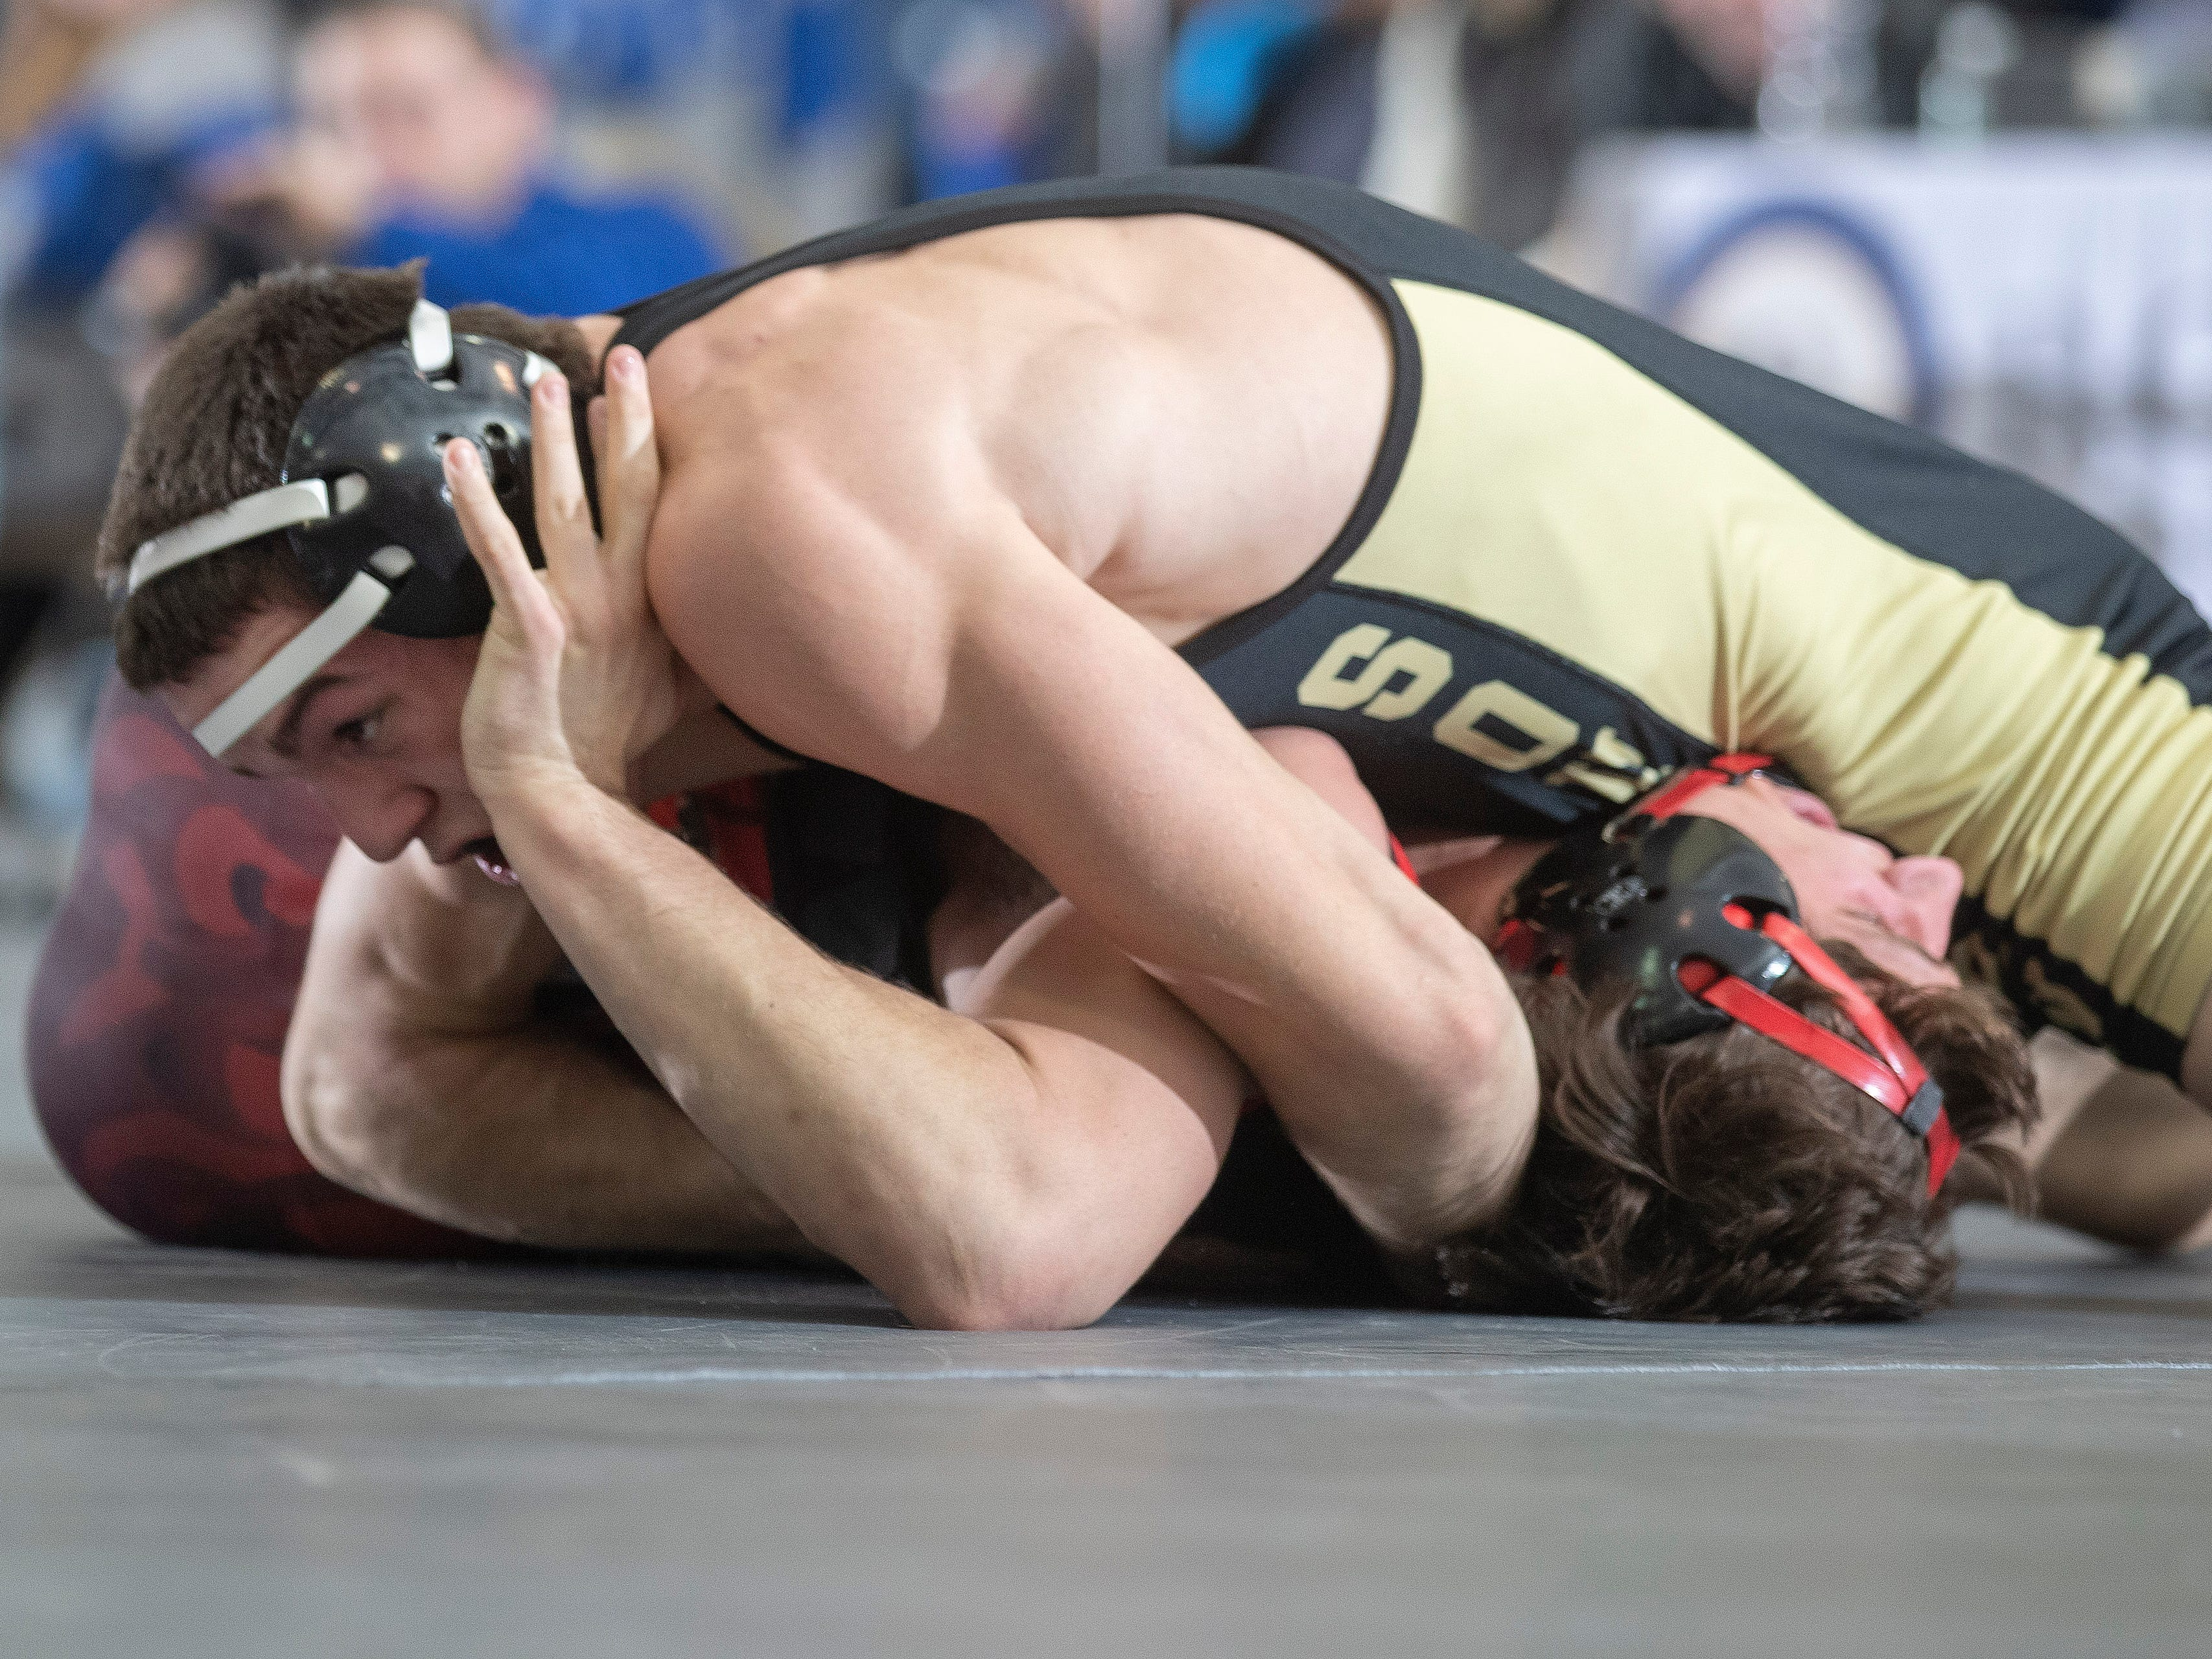 Southern's John Stout pins Hunterdon Central's  Dan Furmato in their 170 lbs. bout.  Southern Regional vs Hunterdon Central in NJSIAA Team Wrestling Group V Final in Toms River NJ on February 10 , 2019.